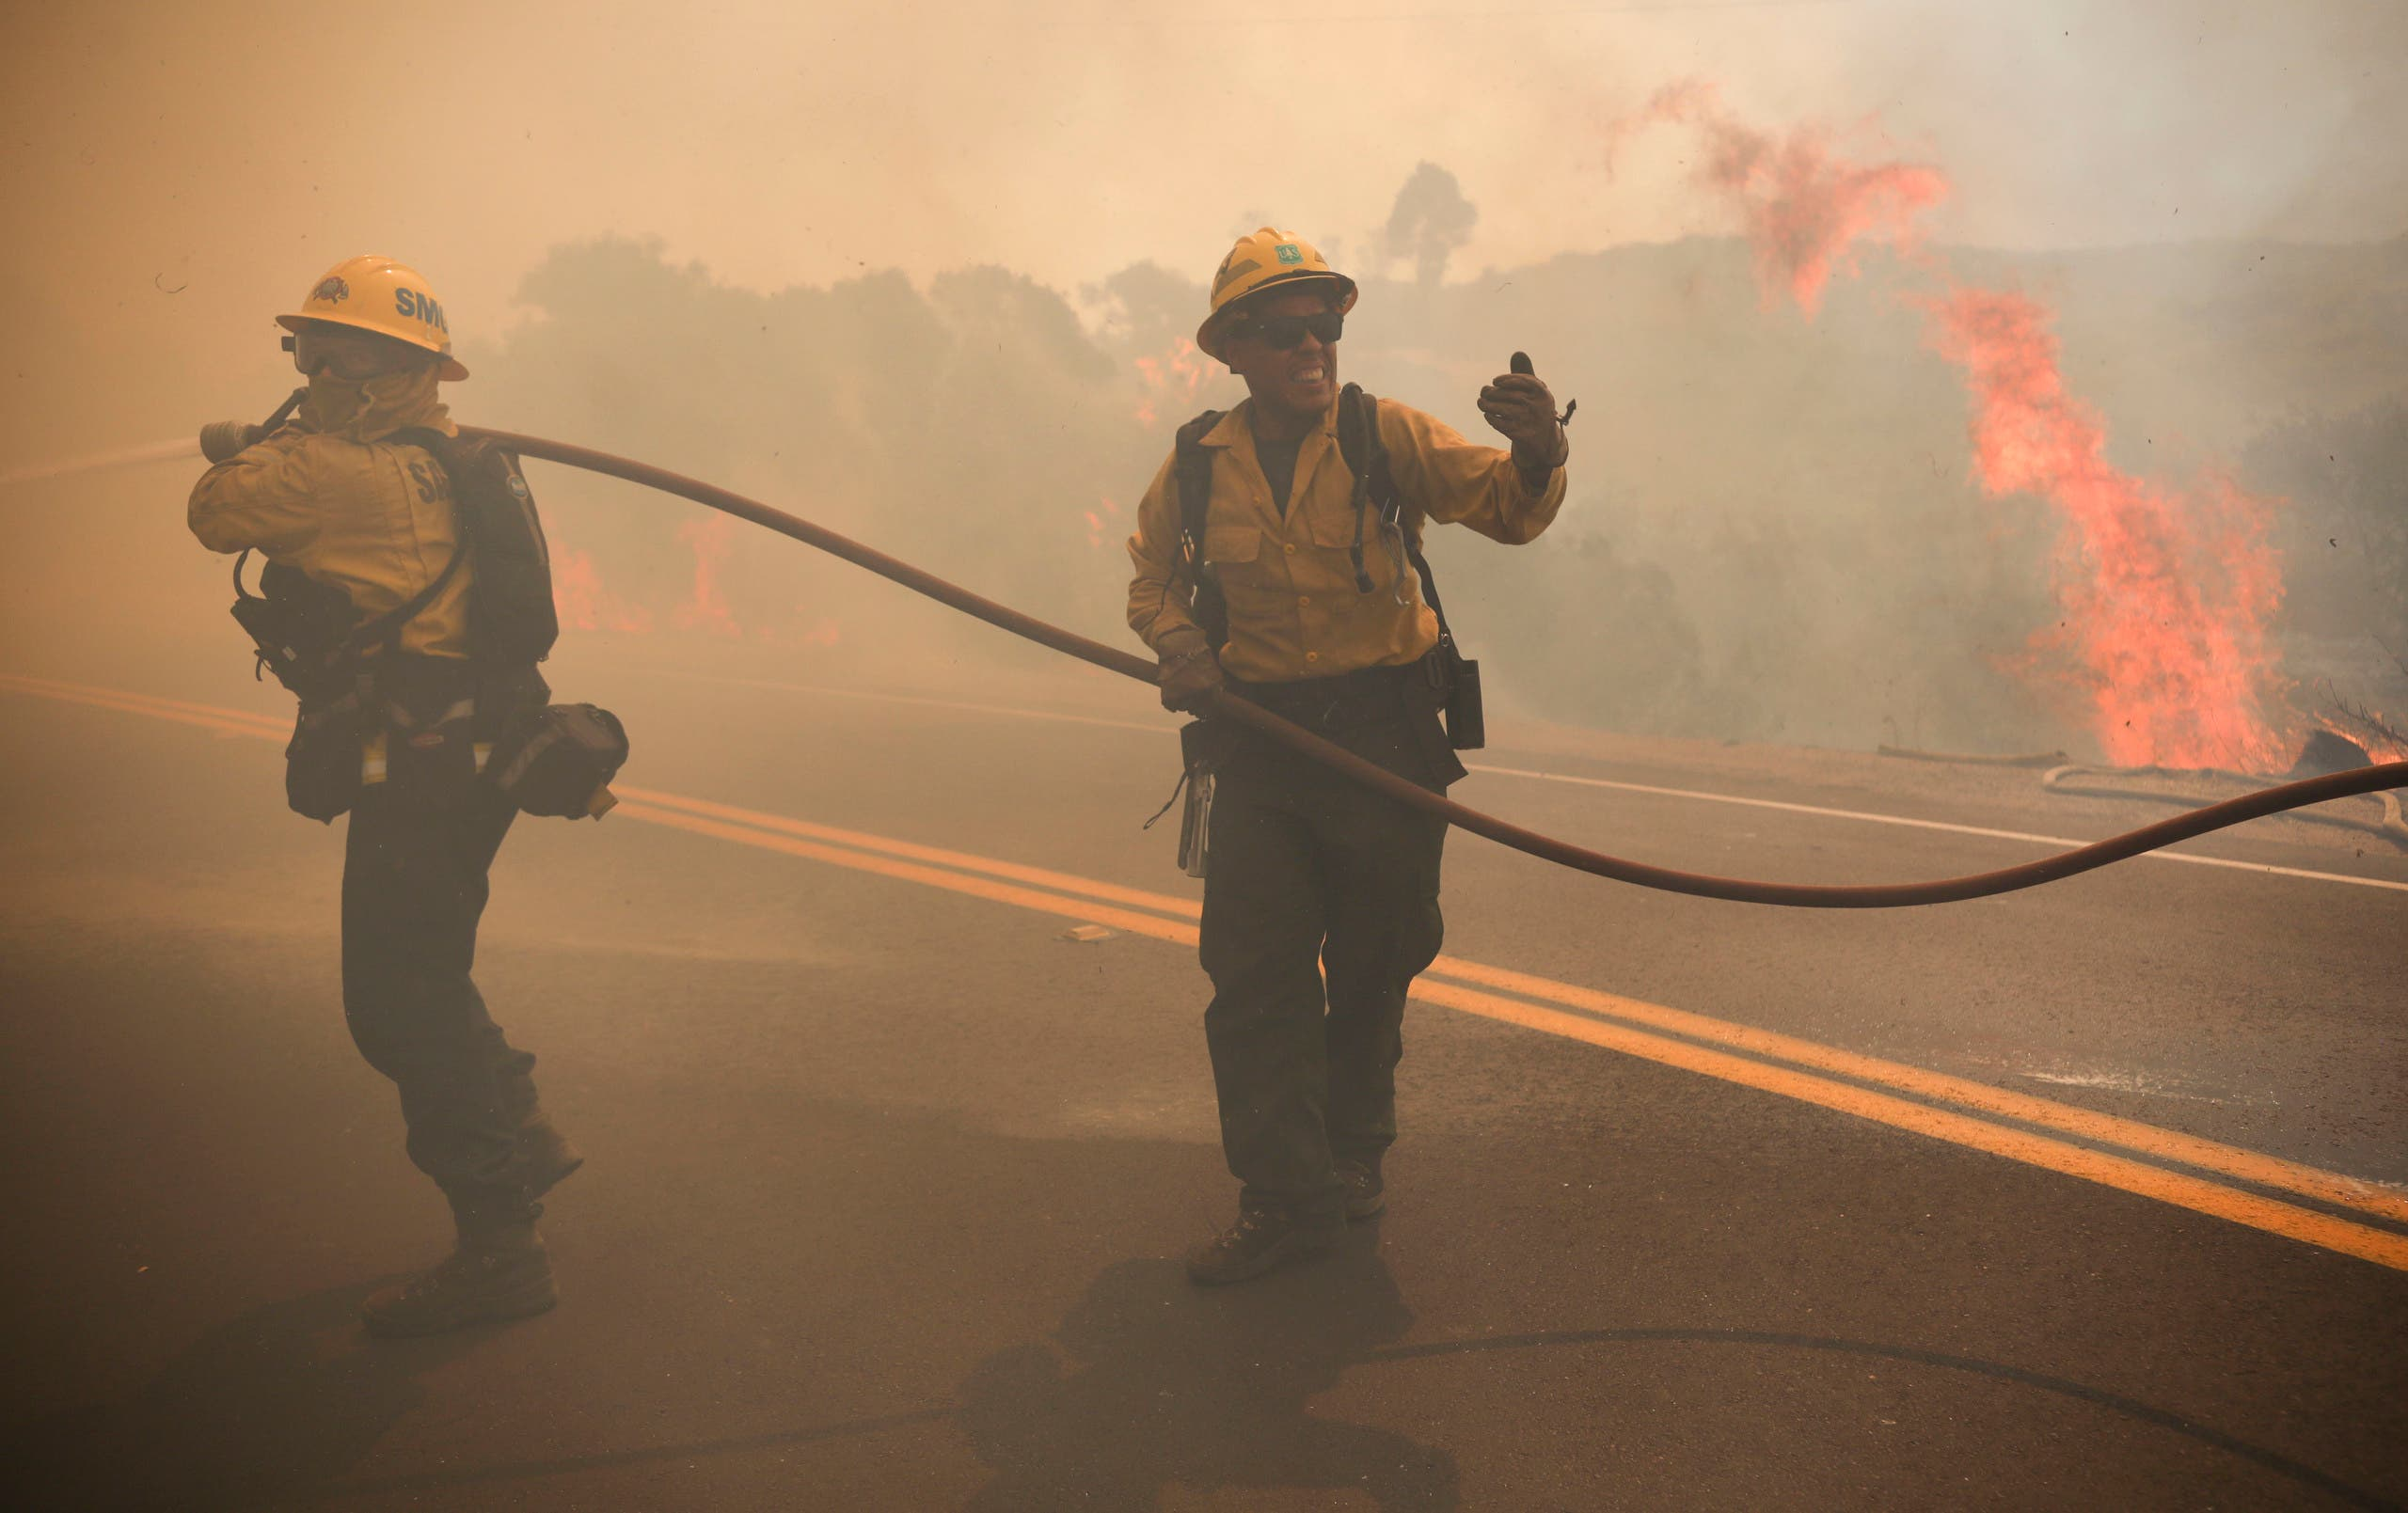 San Miguel County Firefighters battle a brush fire along Japatul Road during the Valley Fire in Jamul, California on September 6, 2020. (AFP)